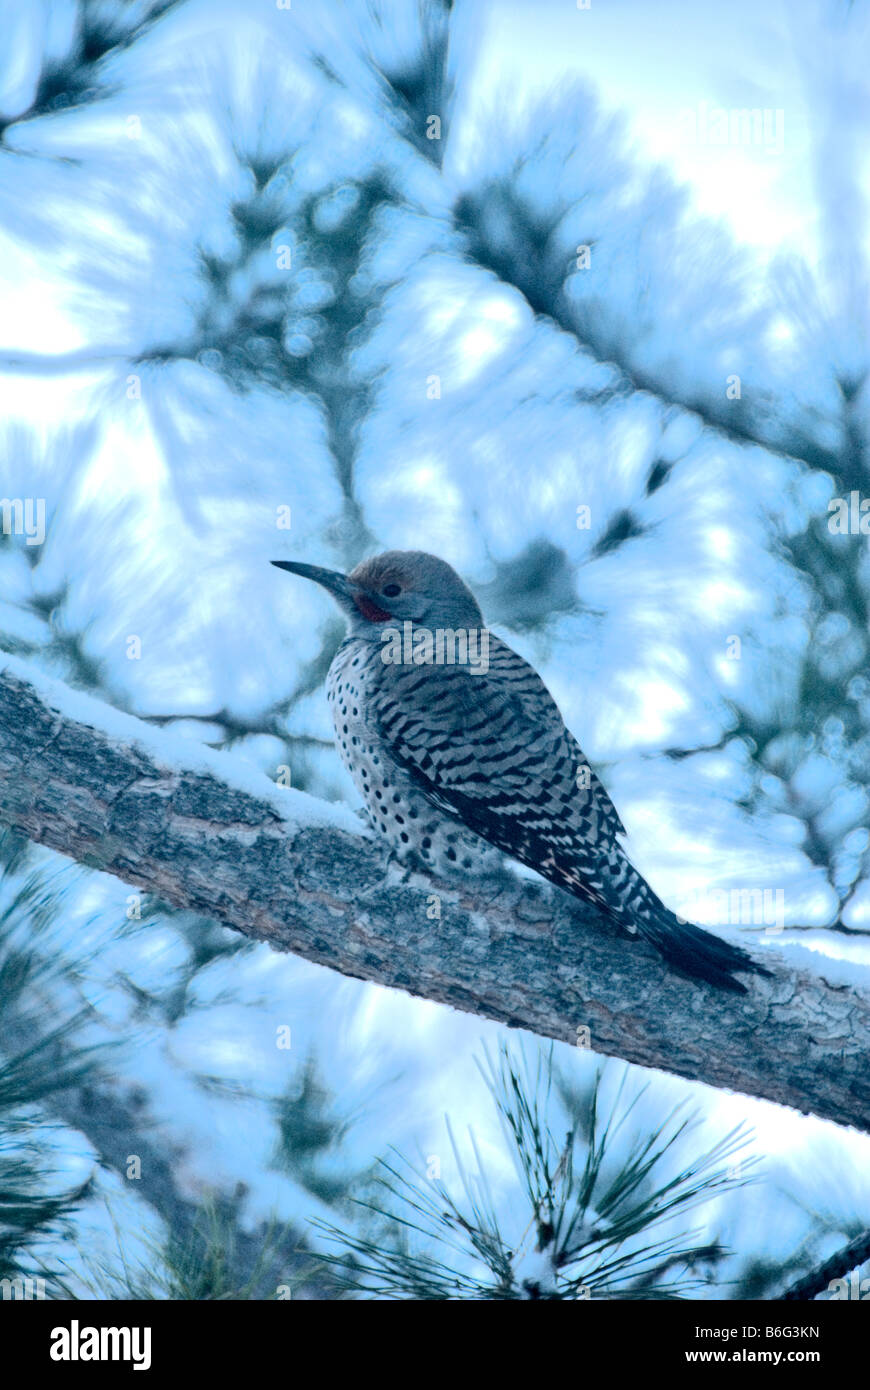 Male Red-Shafted or Northern Flicker (Colaptes auratus cafer) on snowy morning in Ponderosa pine tree, Colorado - Stock Image